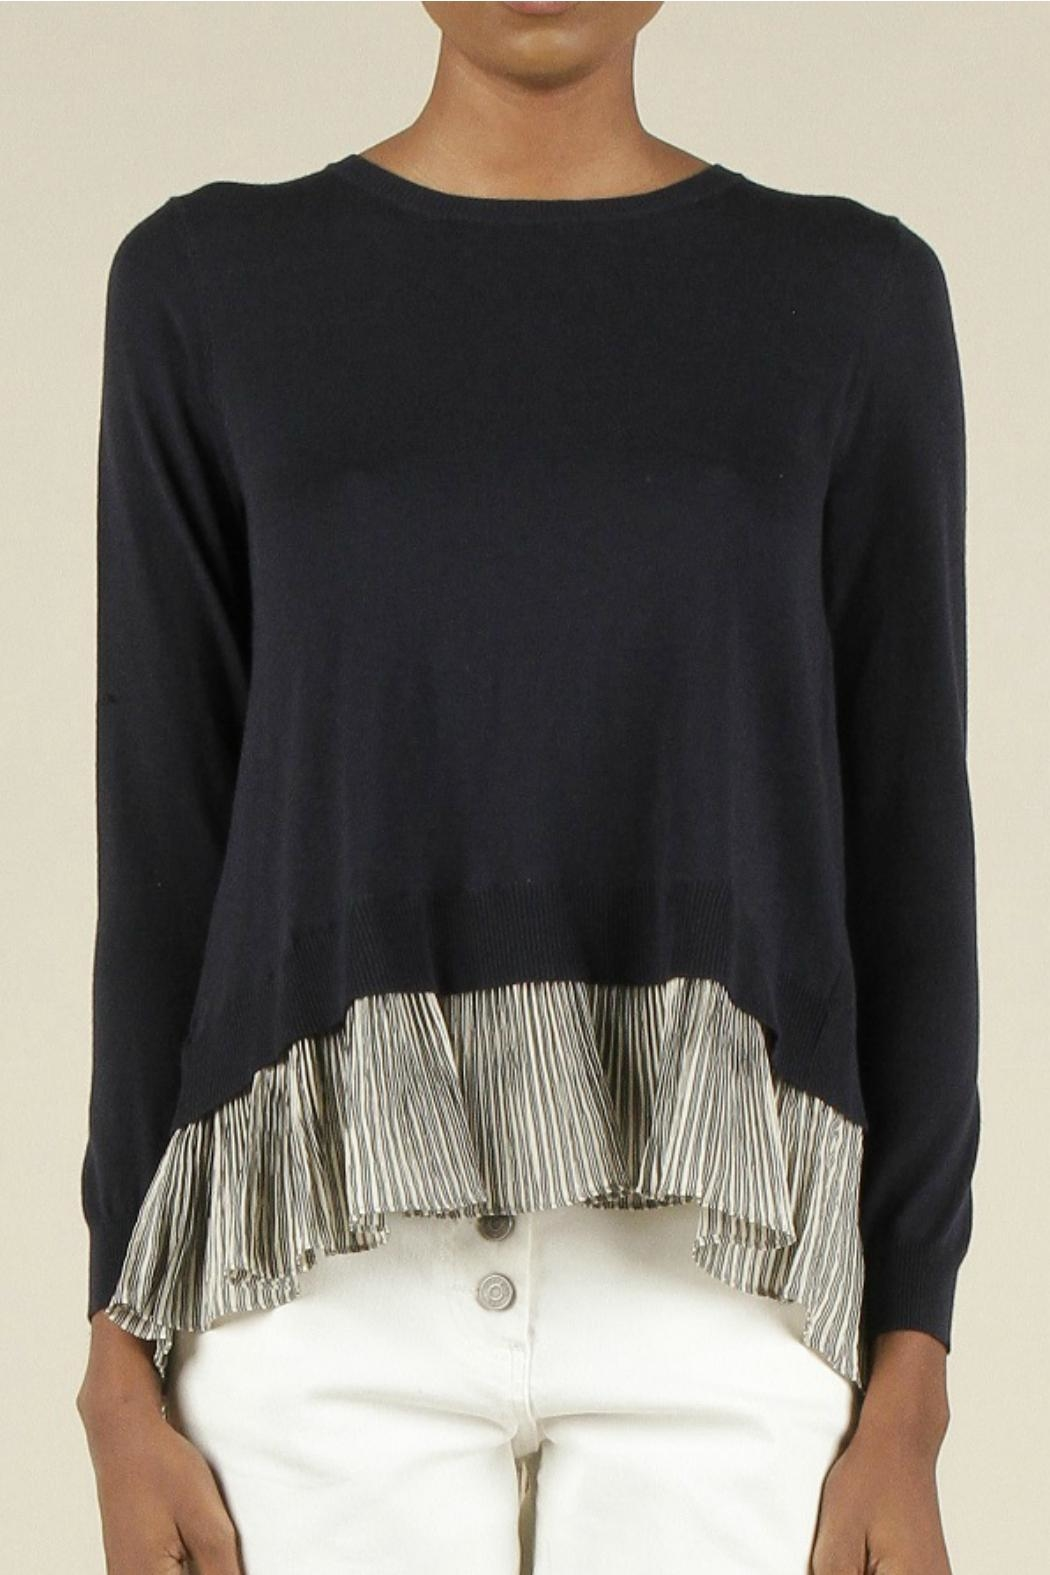 Current Air Layered Look Sweater - Main Image